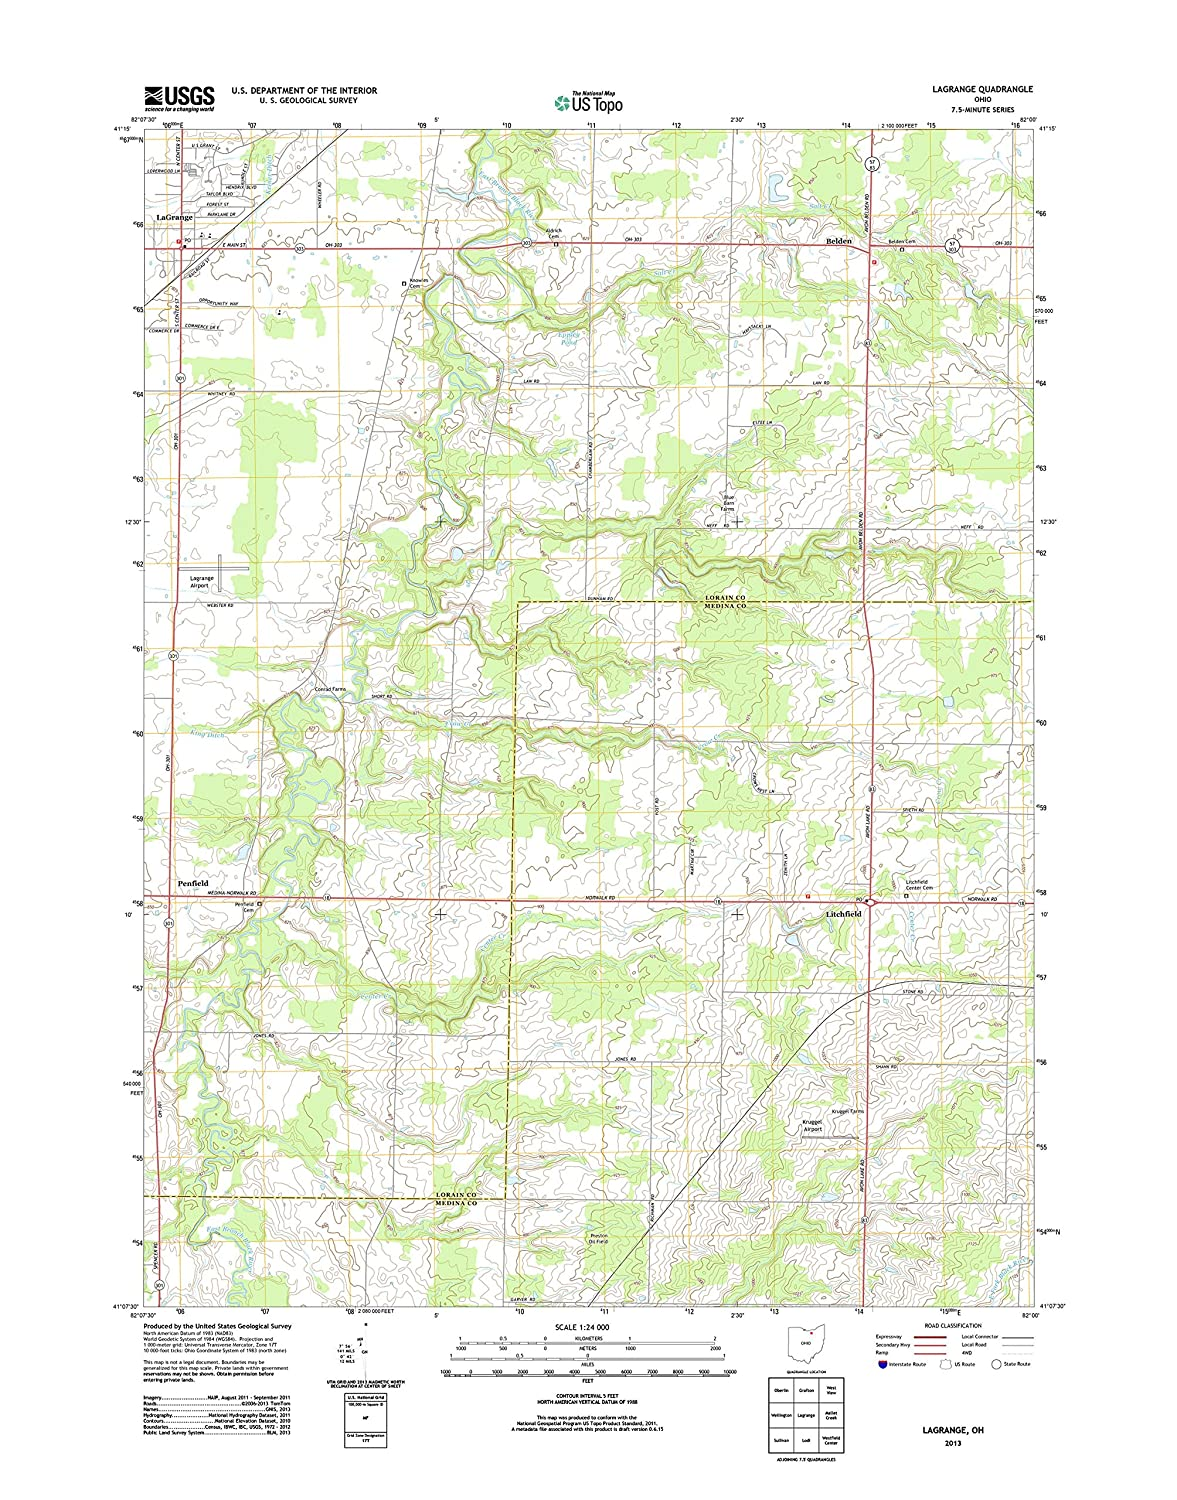 Lagrange Ohio Map.Amazon Com Topographic Map Poster Lagrange Oh Tnm Geopdf 7 5x7 5